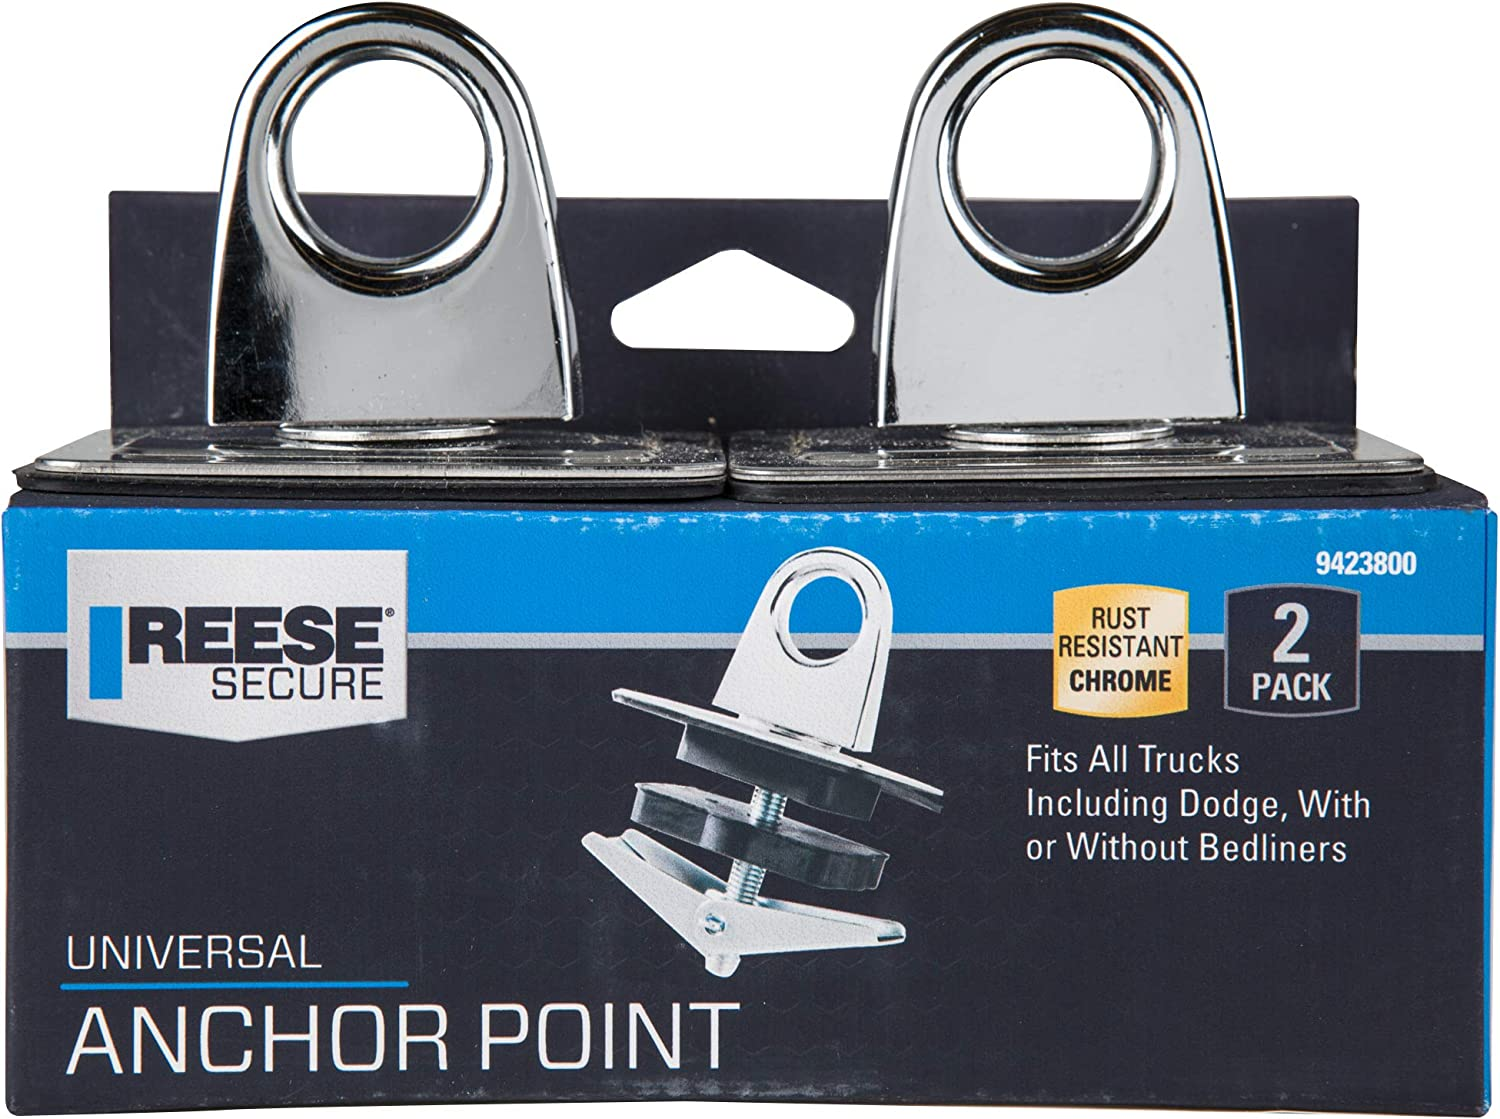 Reese Secure 9423800 Universal Chrome Anchor Point 2 Pack